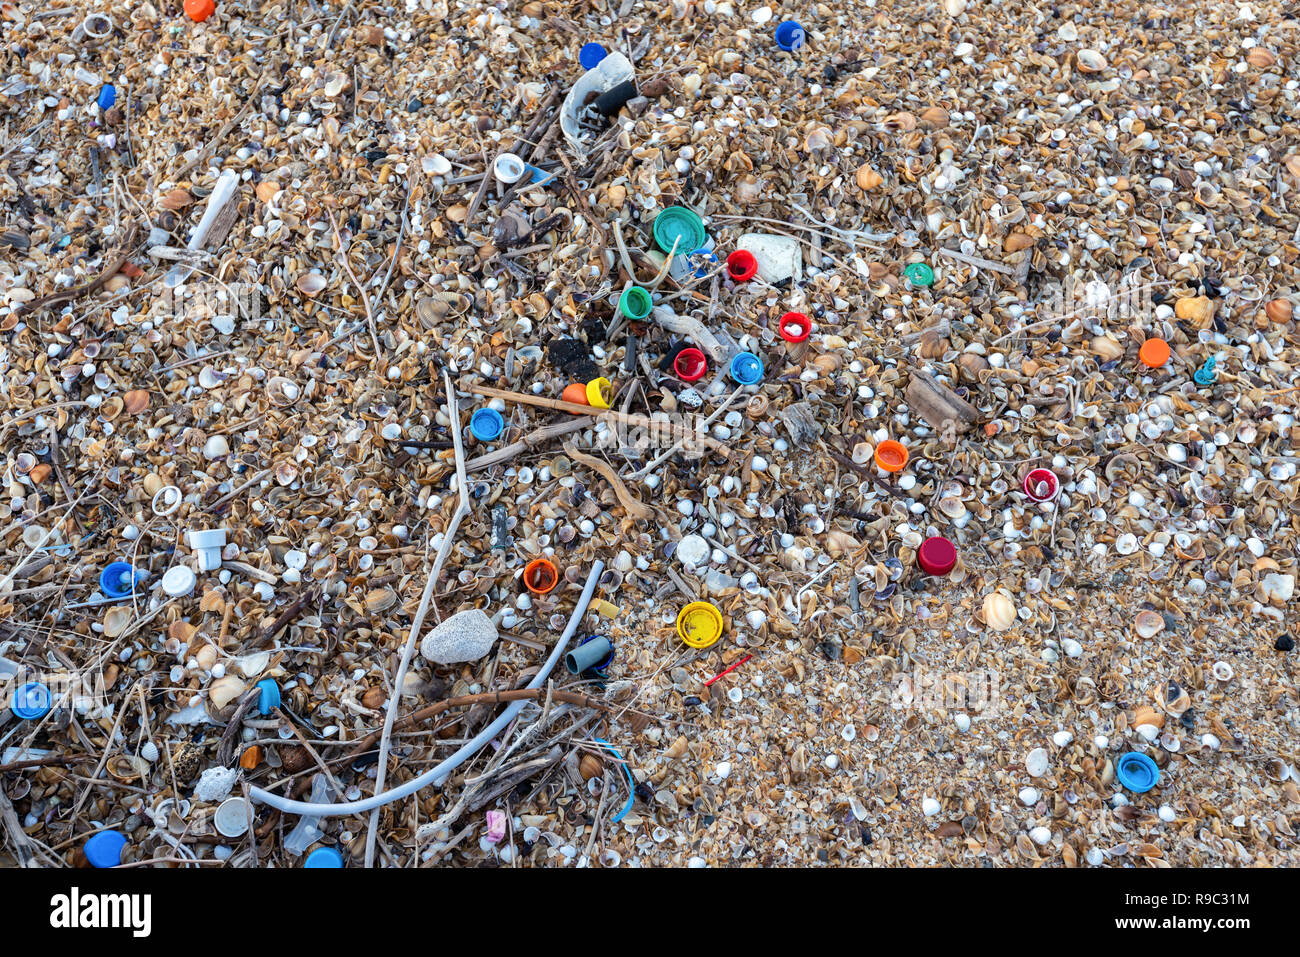 Plastic bottle caps scattered on the beach, environmental pollution - Stock Image